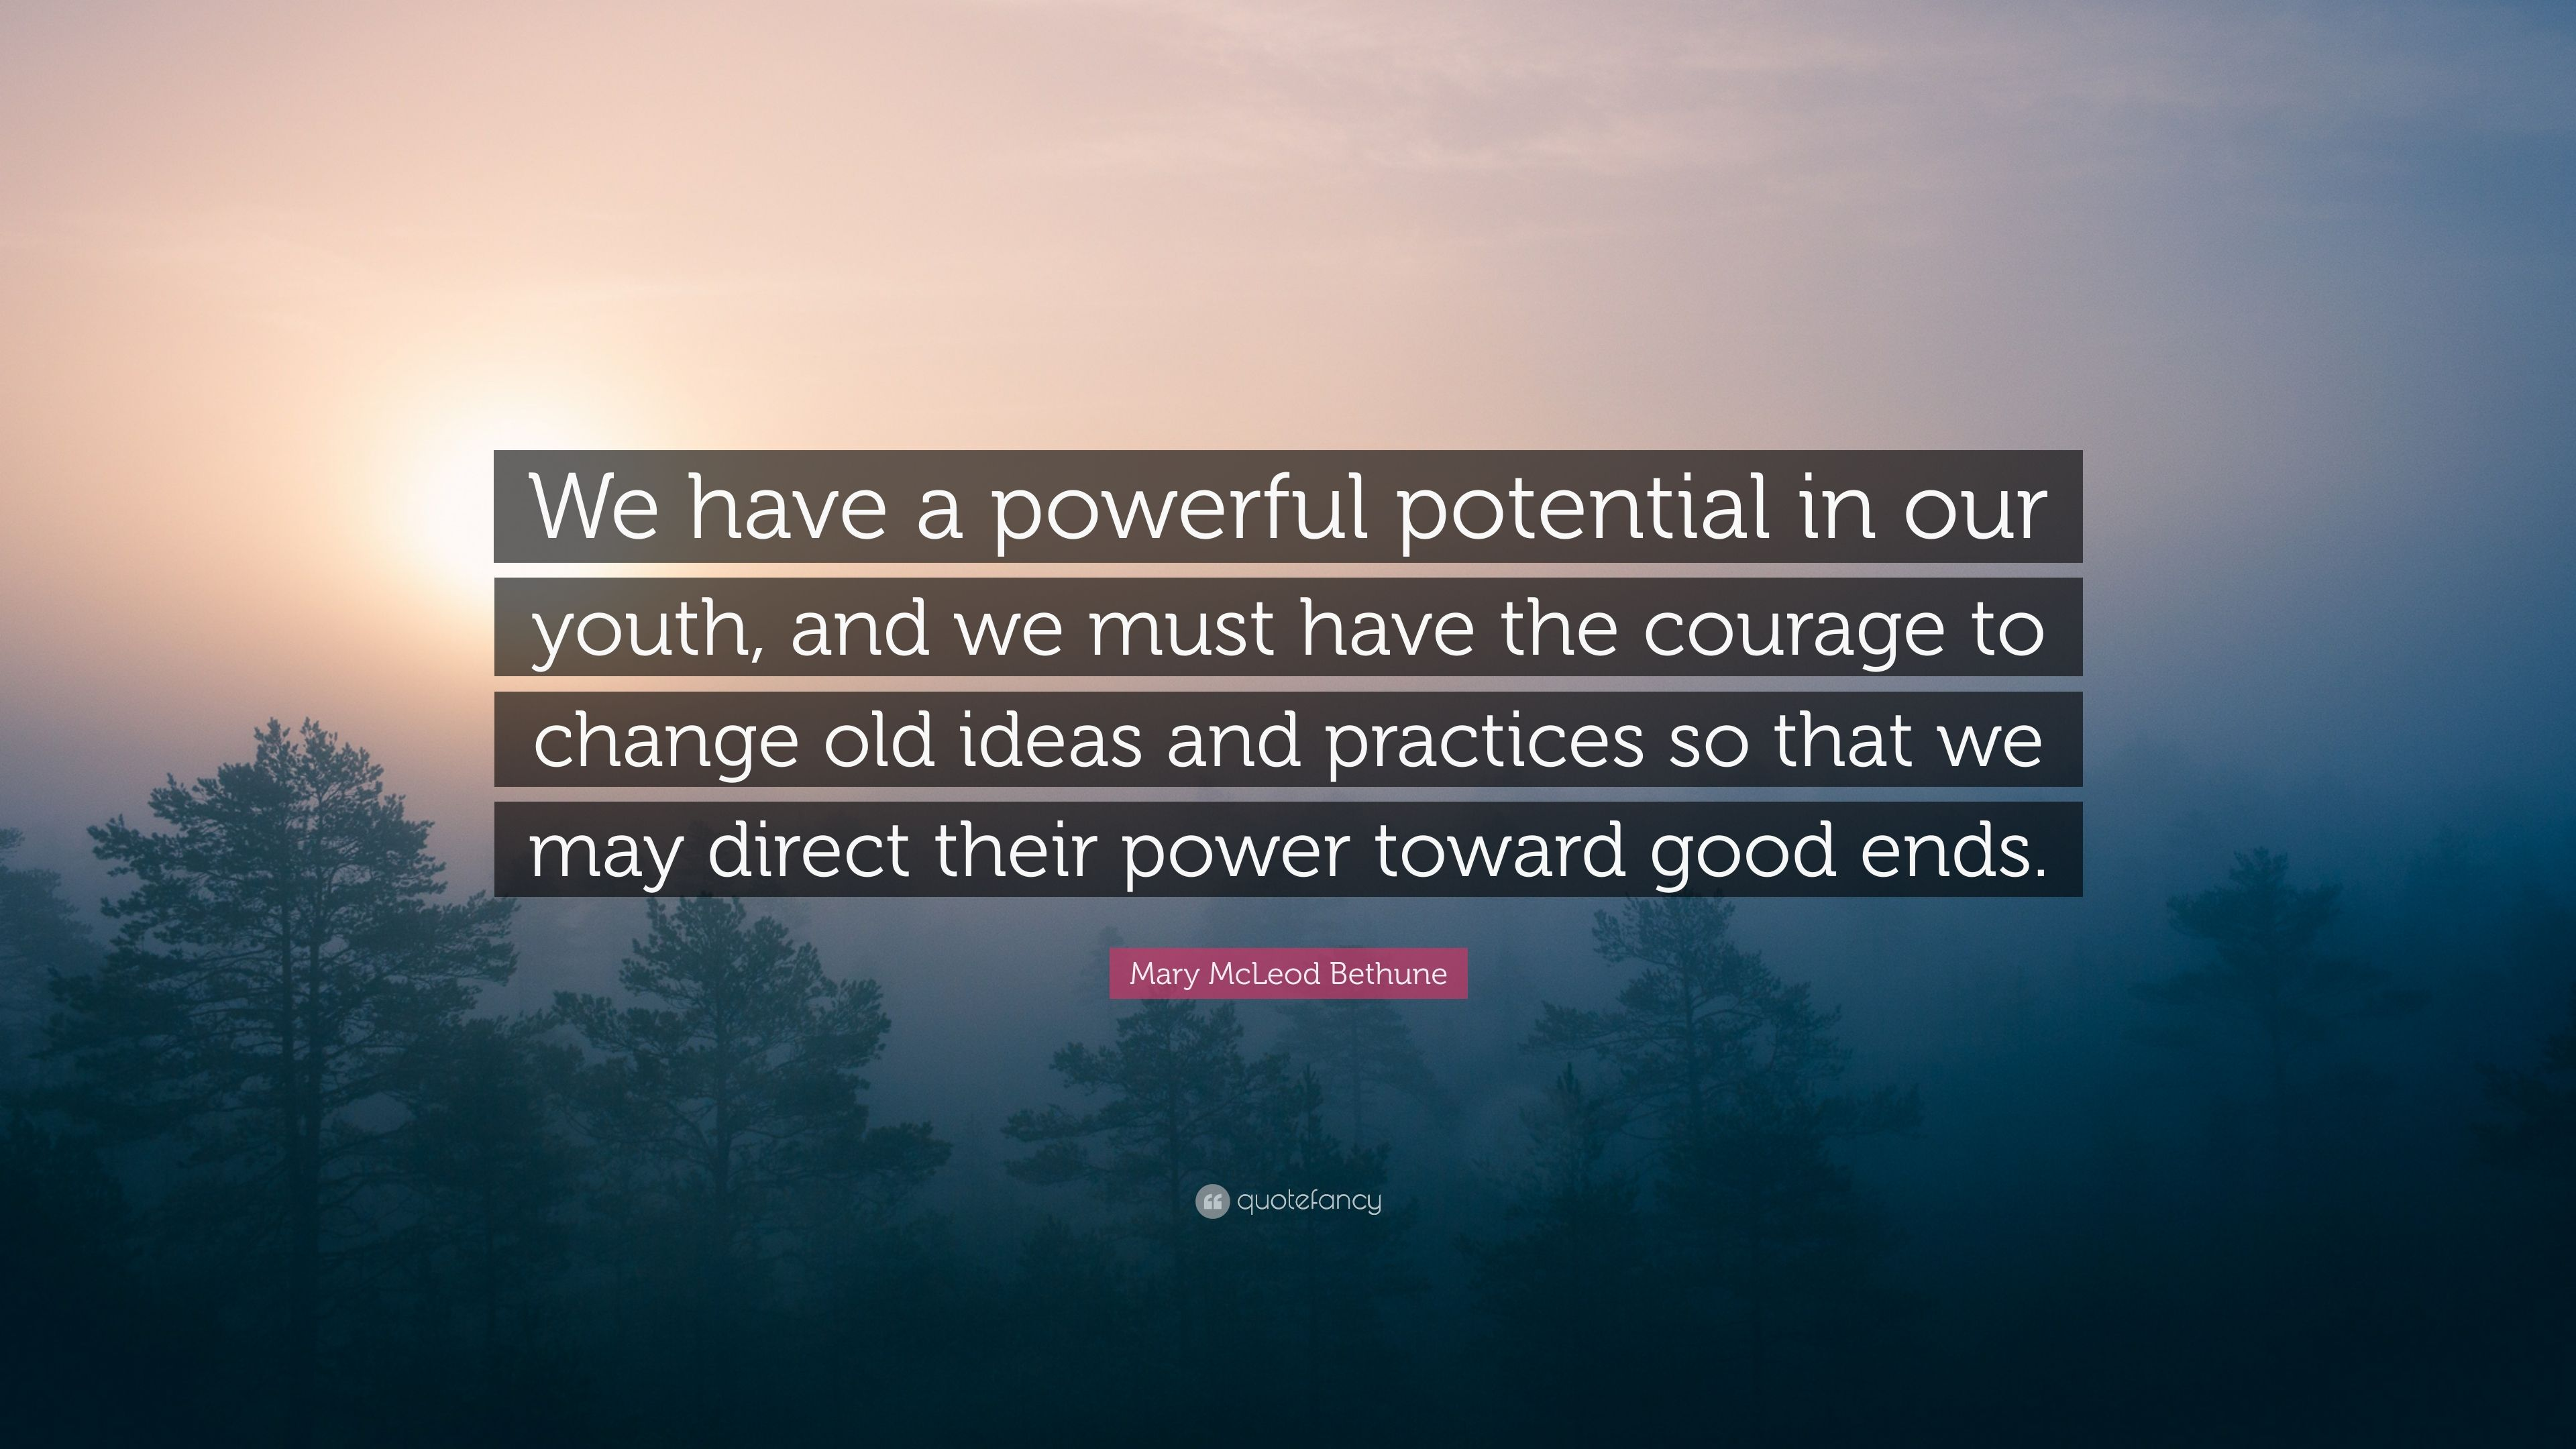 Mary Mcleod Bethune Quote We Have A Powerful Potential In Our Youth And We Must Have The